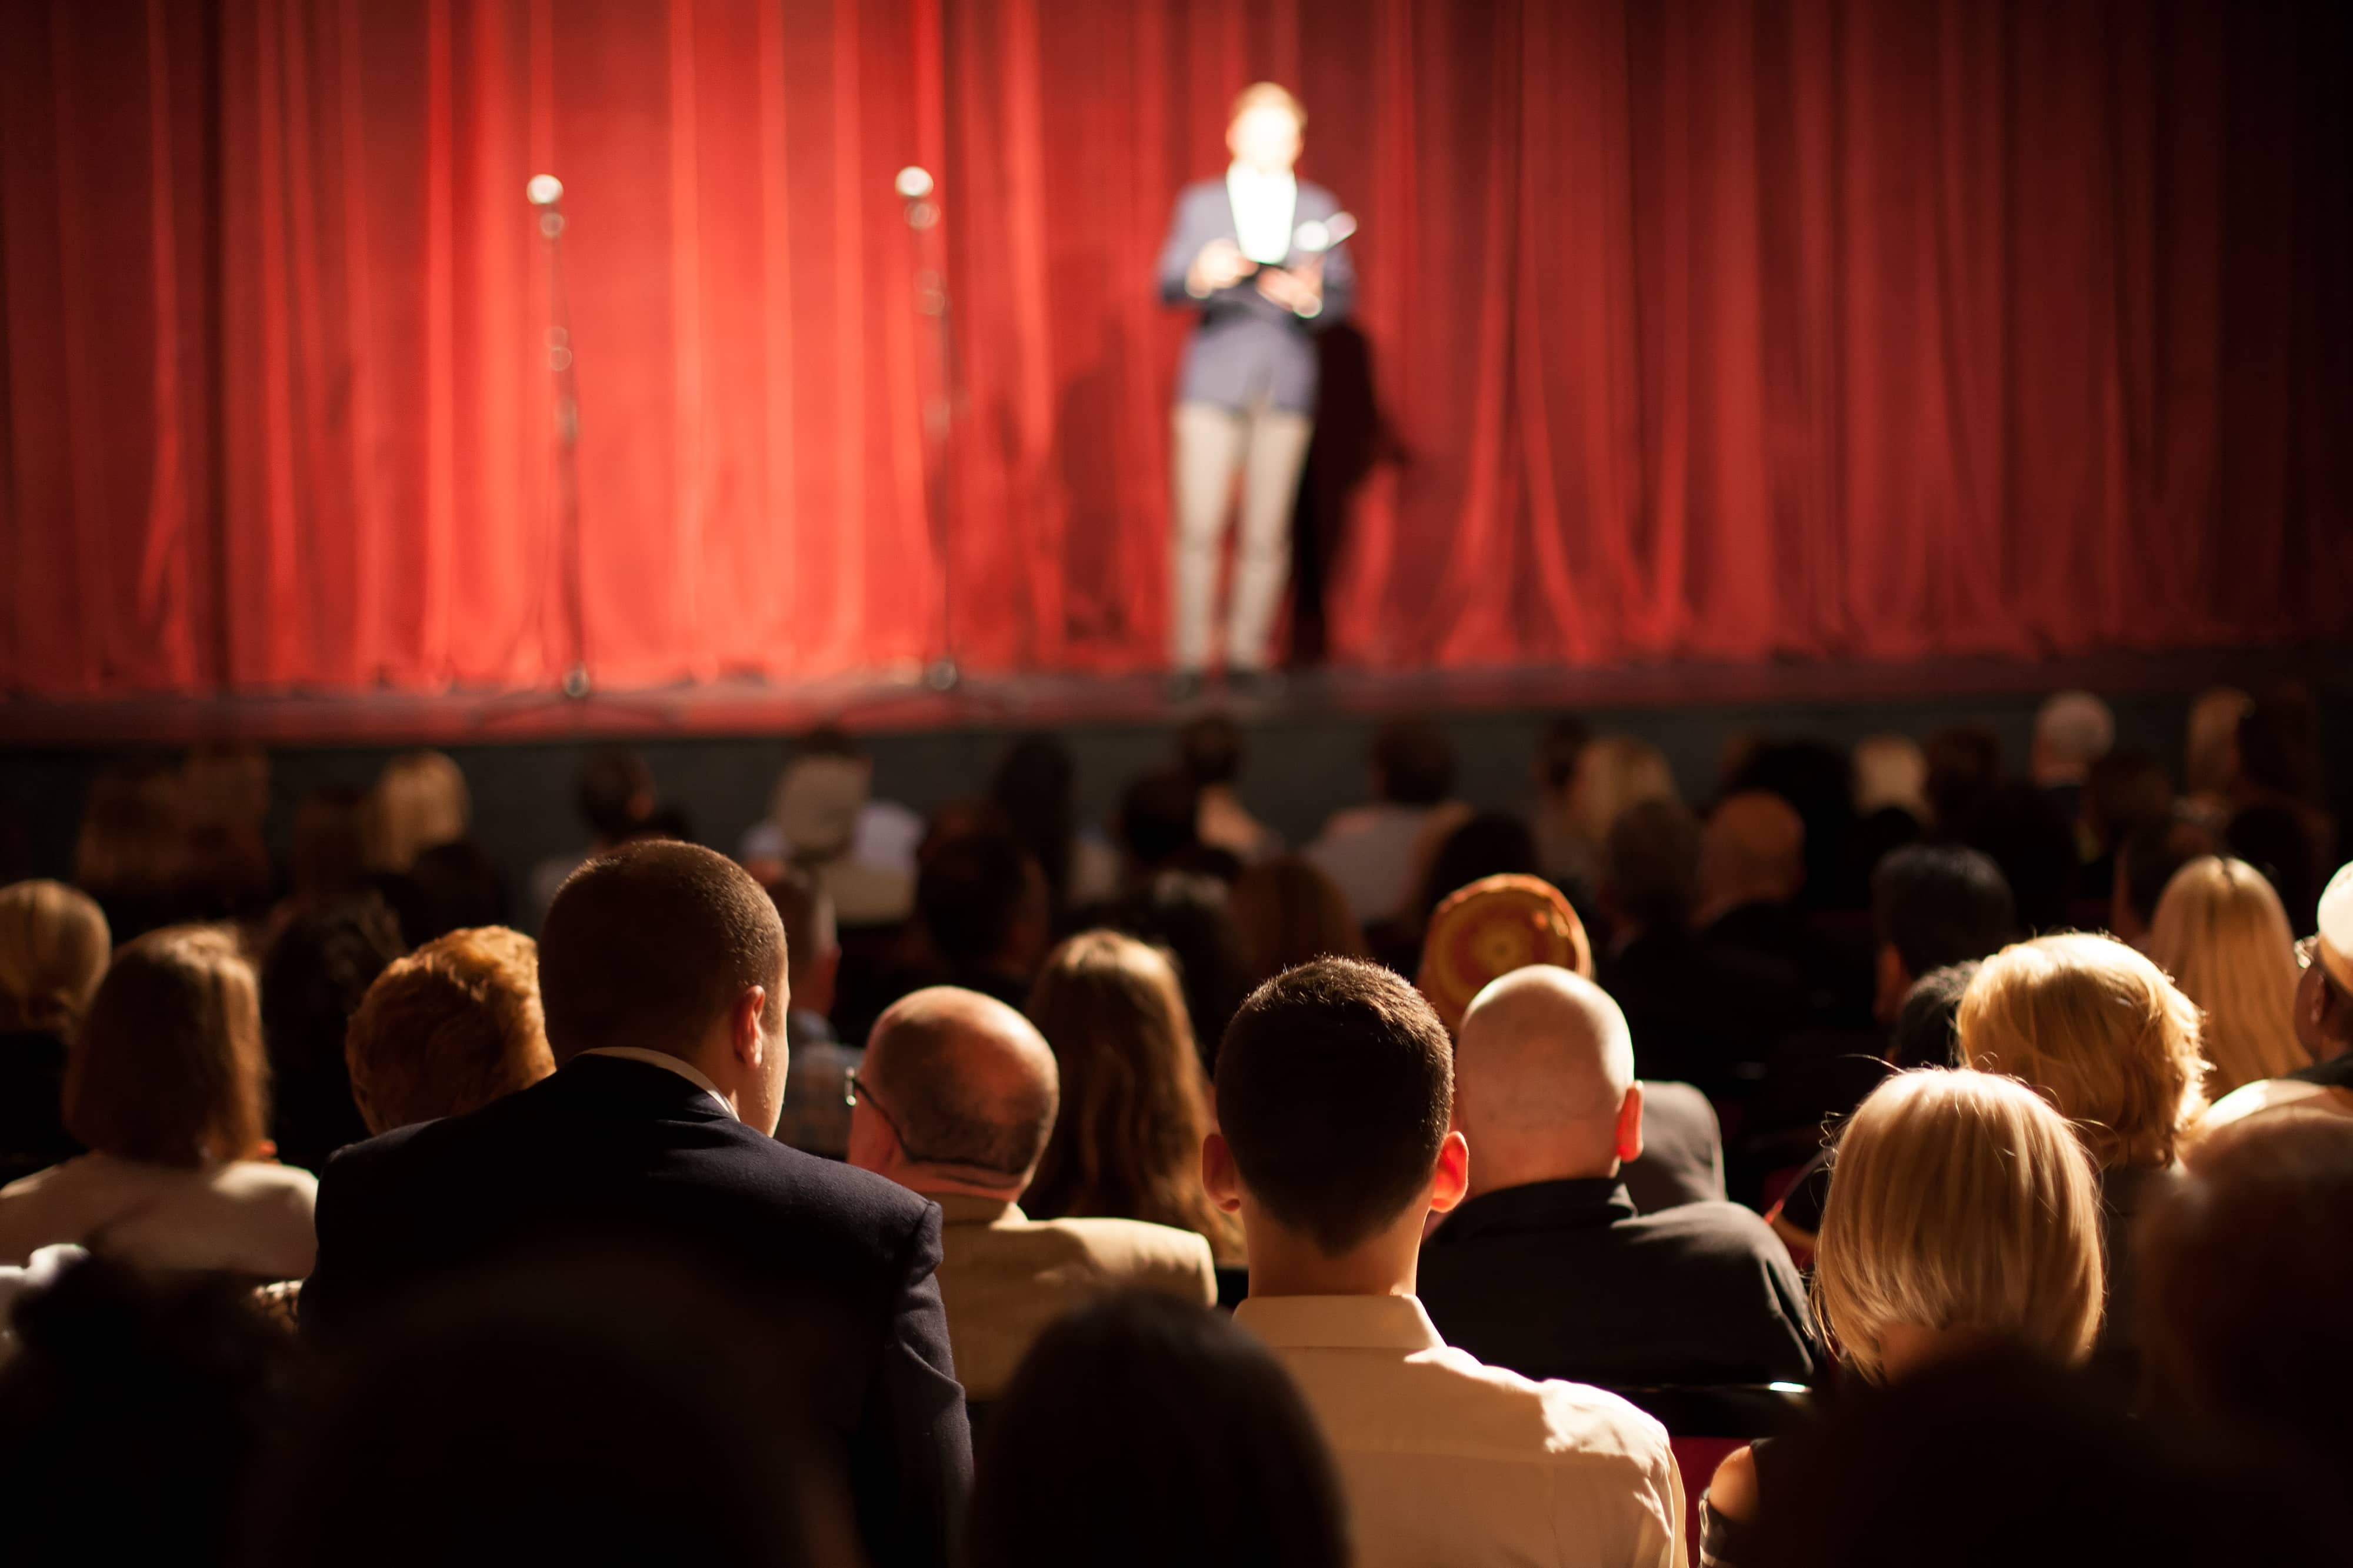 Stand up comedian on stage.